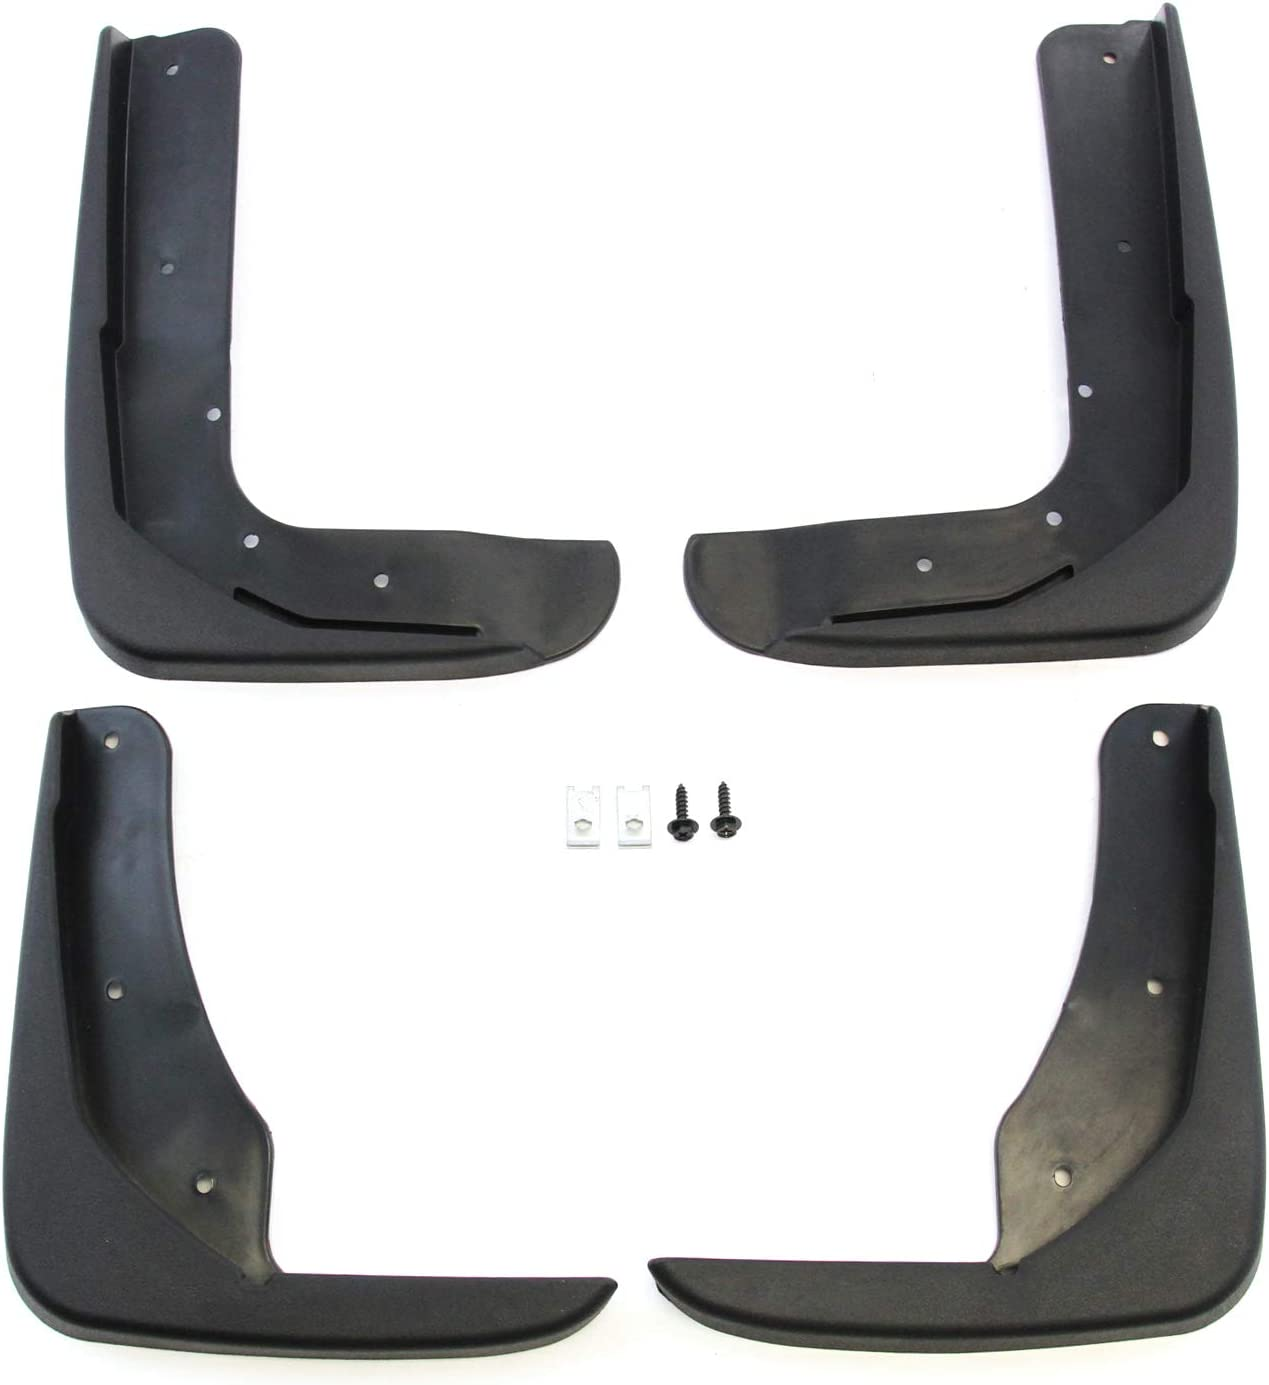 Red Hound Auto Compatible with Ford Taurus 2010-2019 Mud Flaps Splash Guards Front and Rear Molded 4pc Full Set